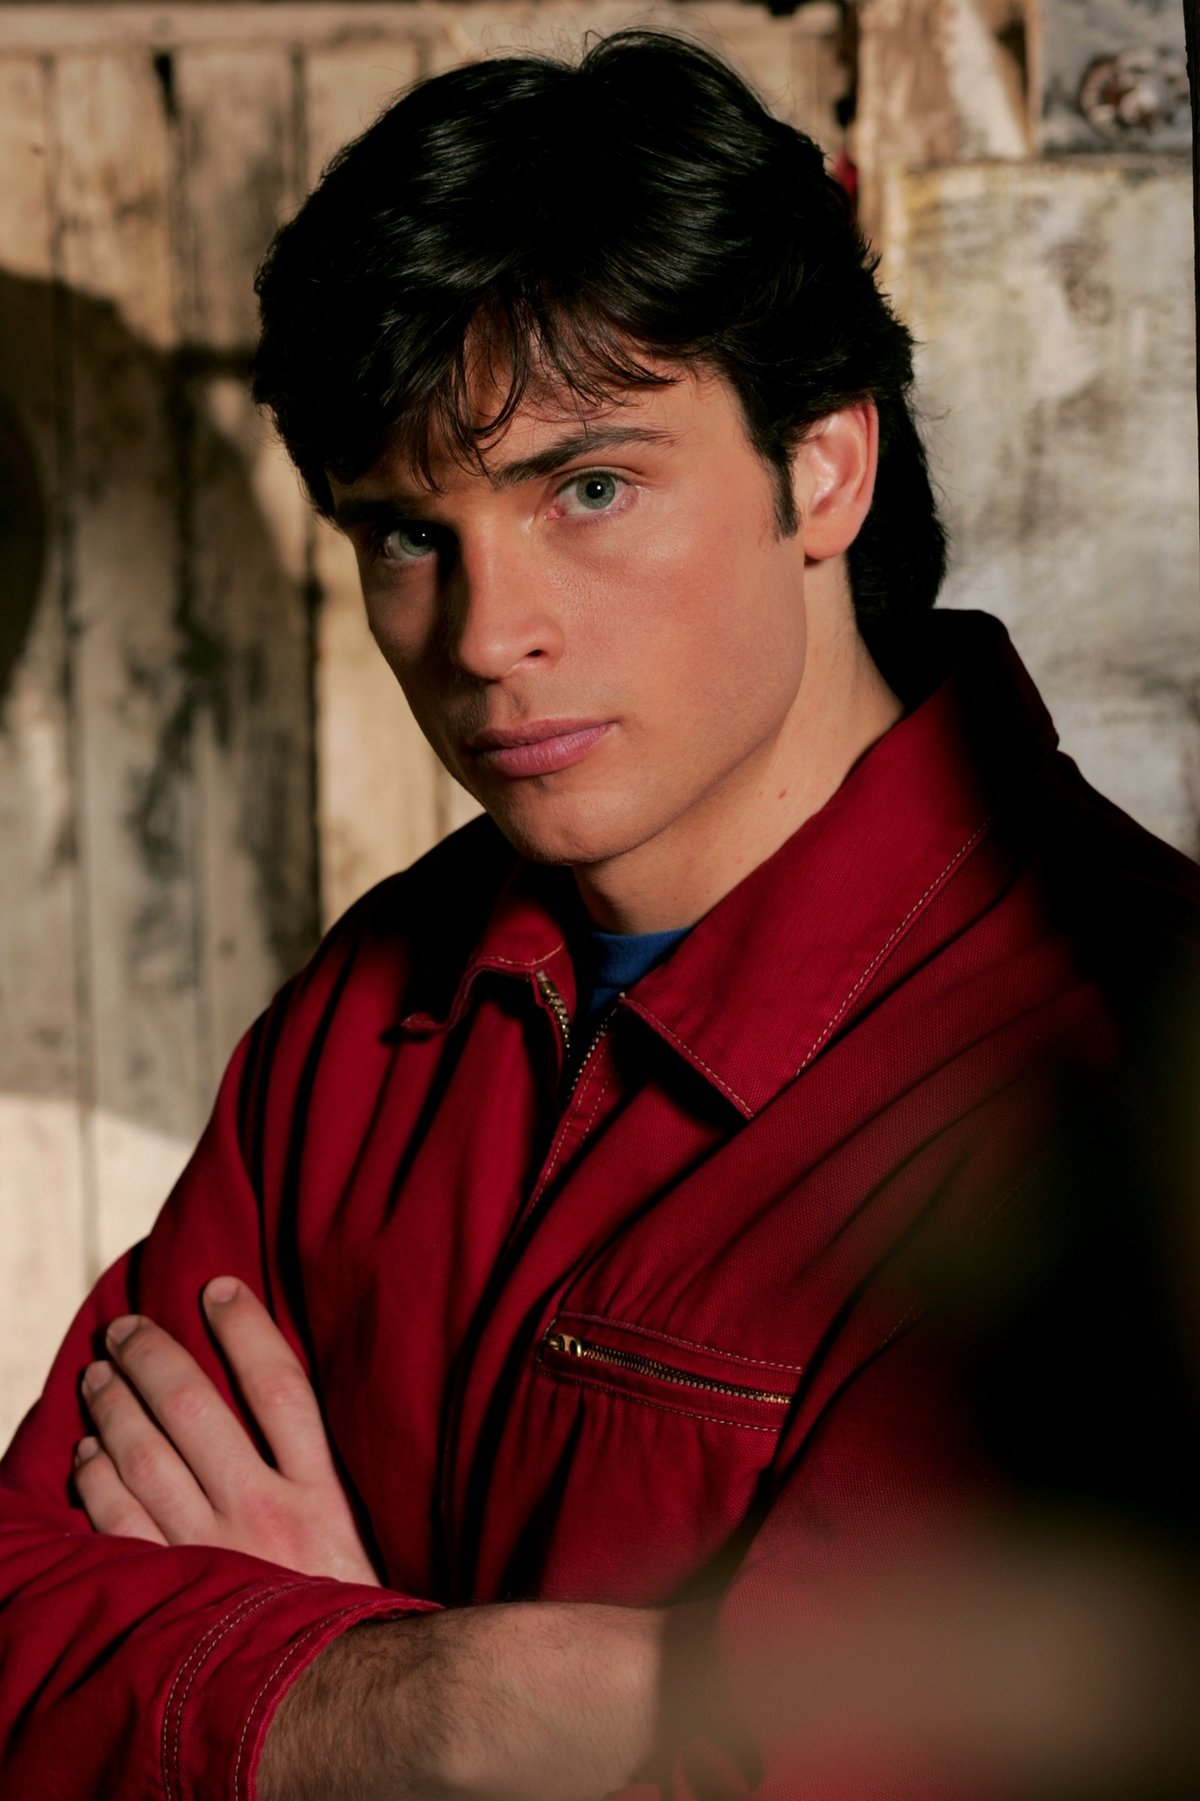 tom welling wedding pictures - HD 1200×1801